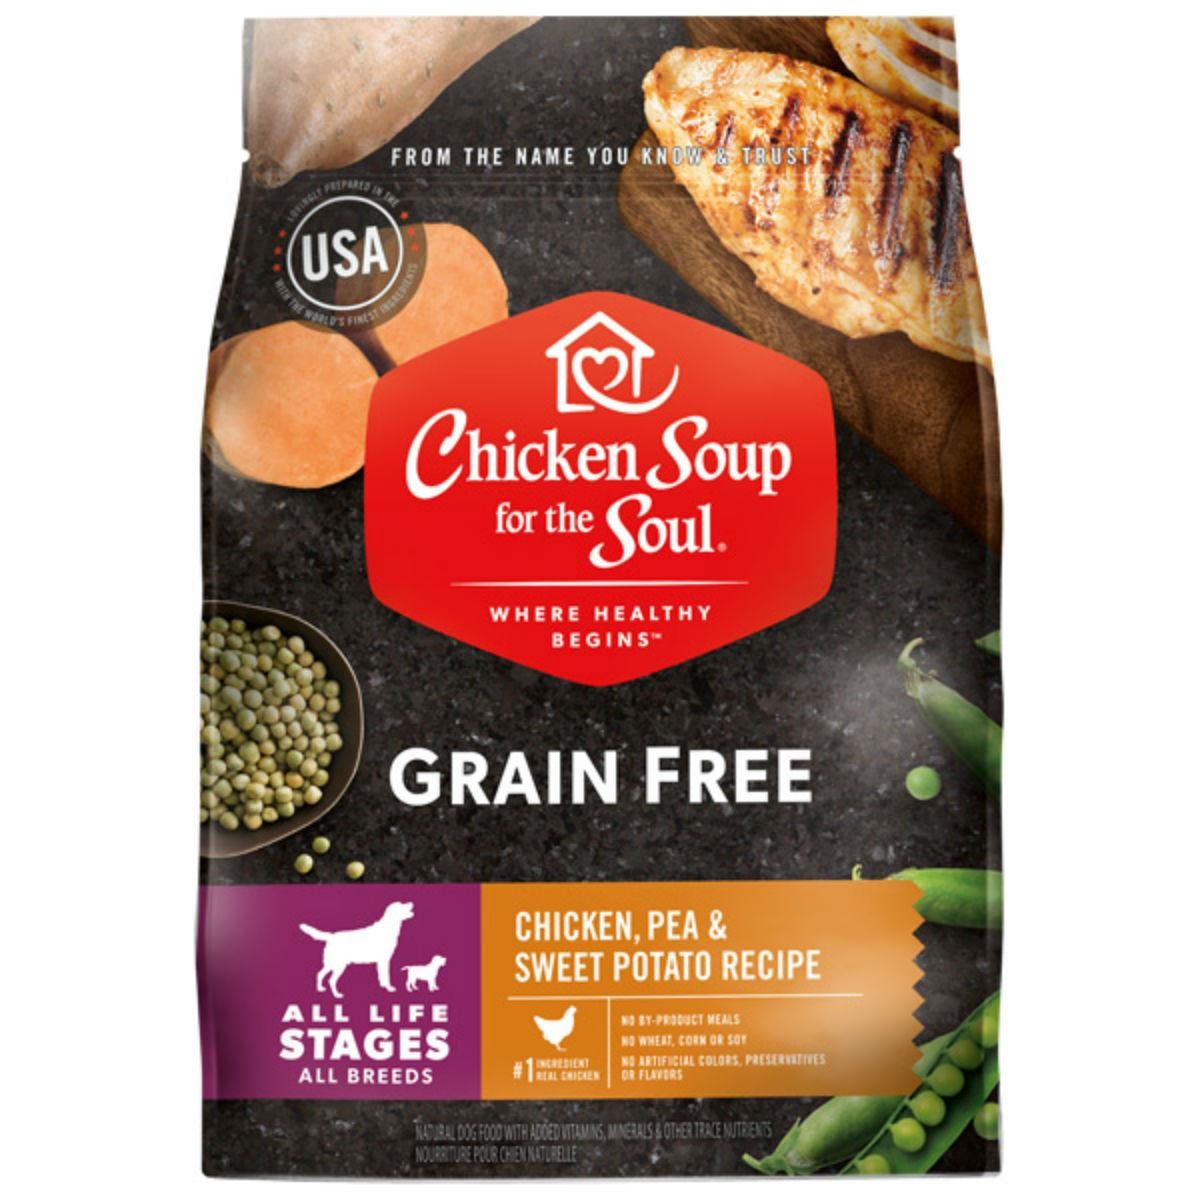 Chicken Soup for the Soul Grain Free All Life Stages Dog Food - Chicken, Pea & Sweet Potato Recipe